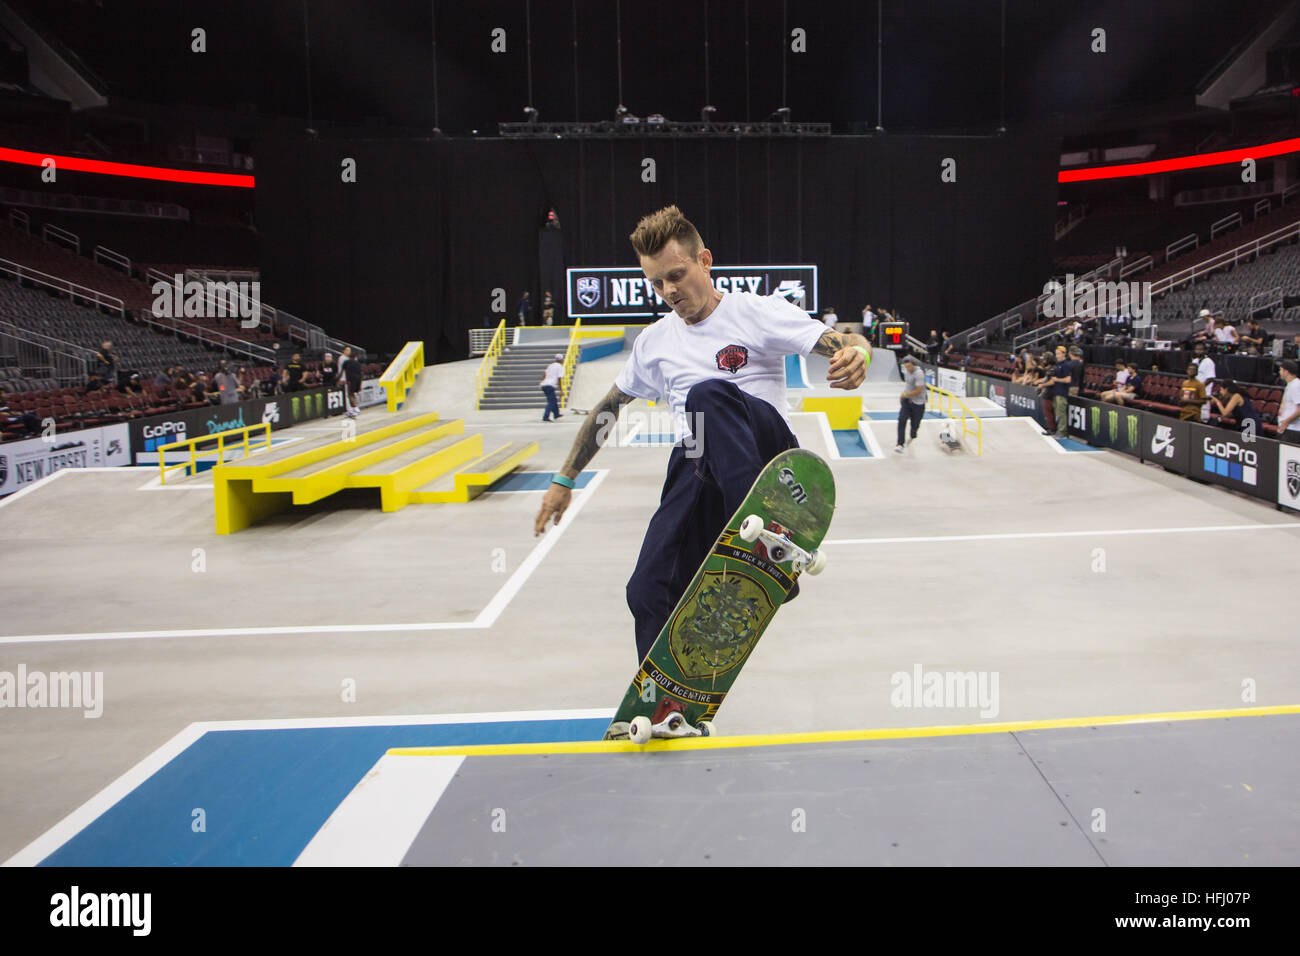 Cody McEntire nose grinds the coping during the practice session at the Street League Skateboarding contest - Stock Image